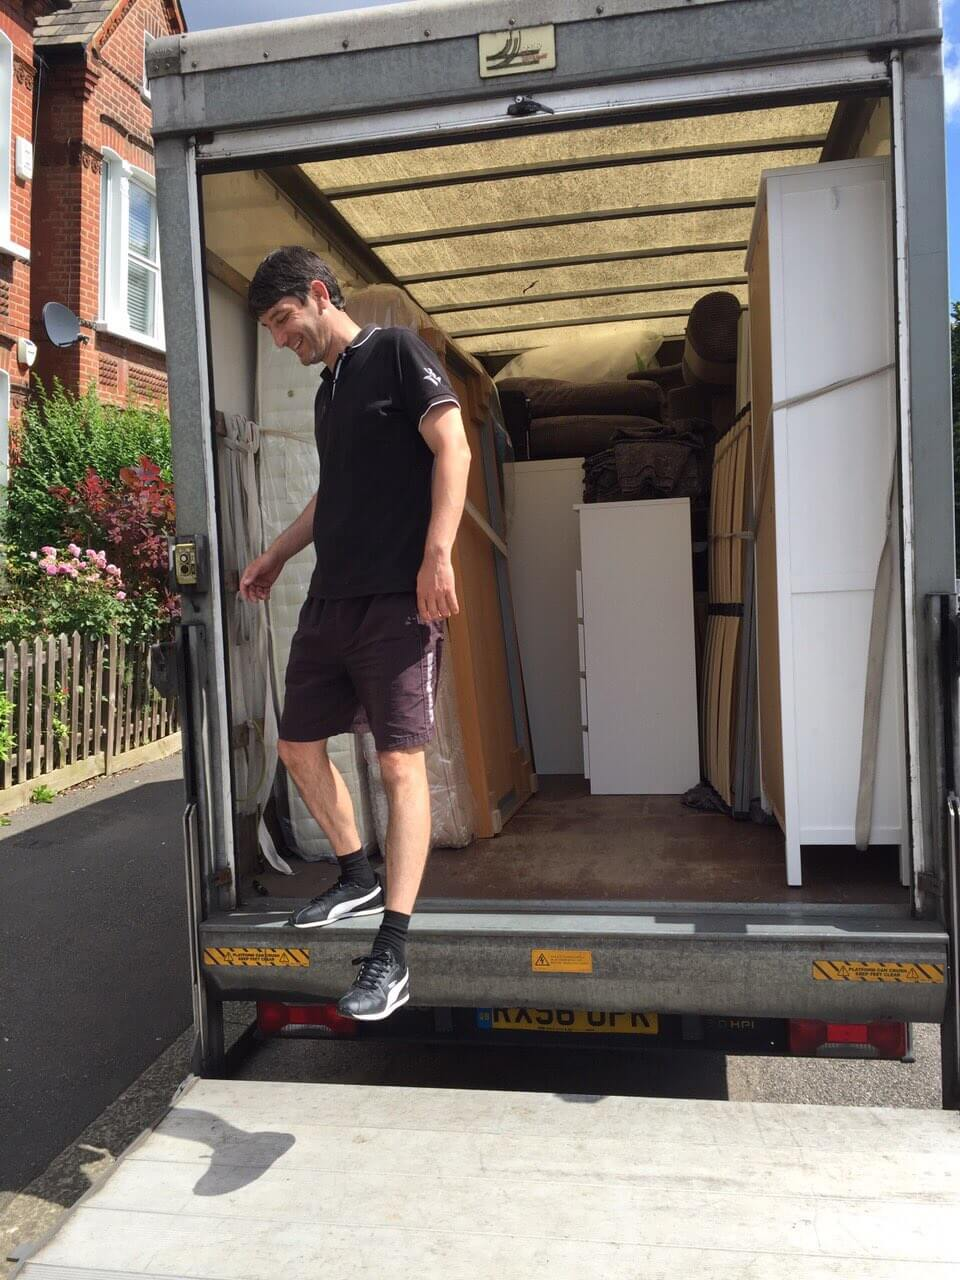 van removals Coulsdon